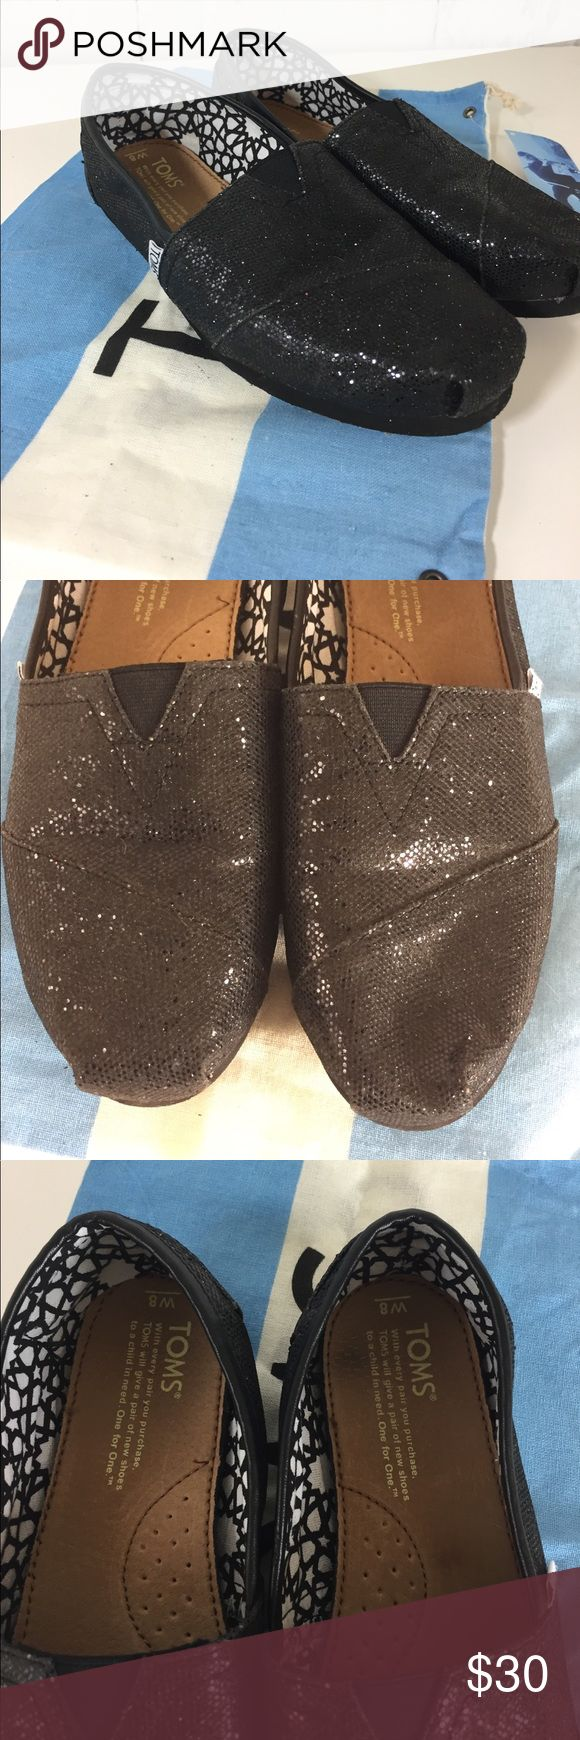 Black Glitter TOMS w/Dust Bag 8 Almost new pair of black sparkly TOMS with dust bag. They've only been worn a couple of times. Size 8 TOMS Shoes